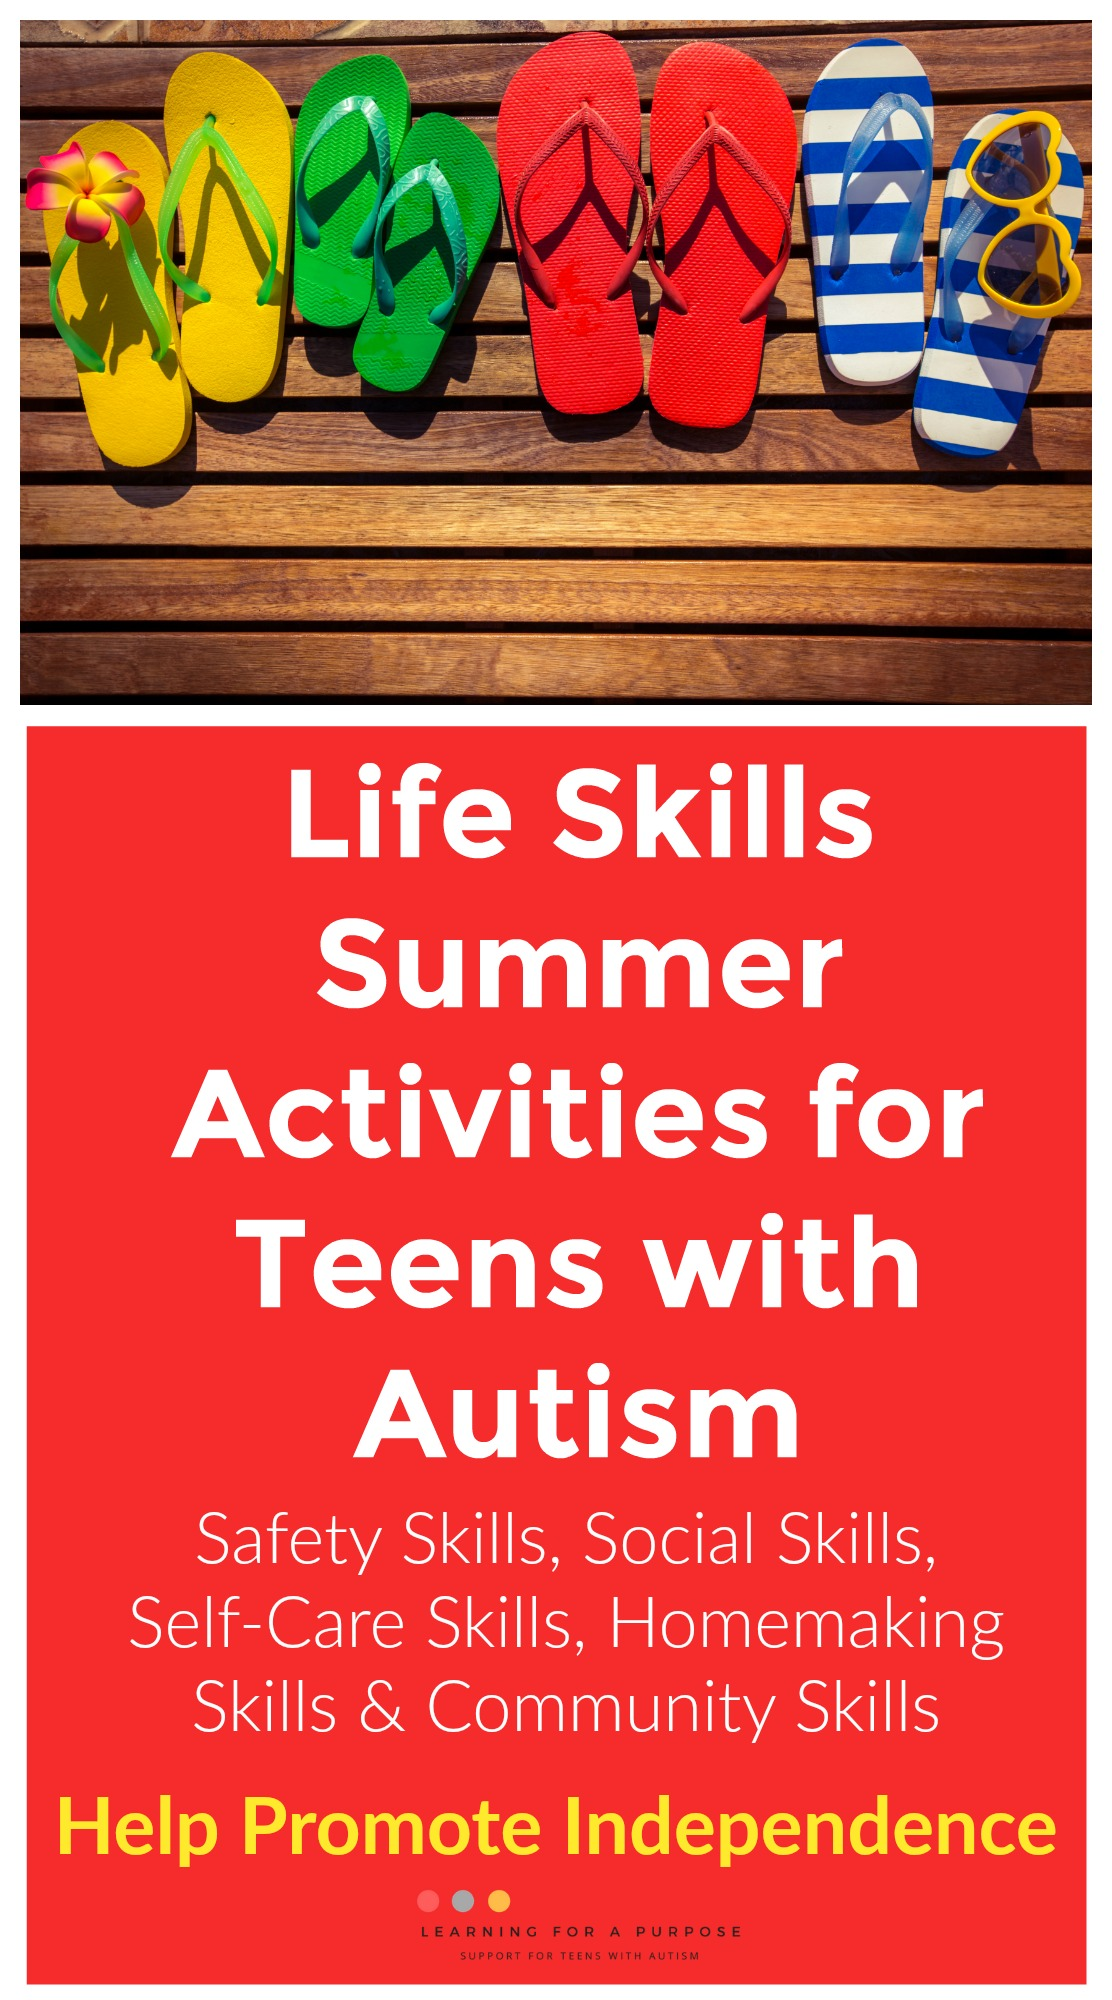 life skills summer activities #summer #autism #teens #lifeskills